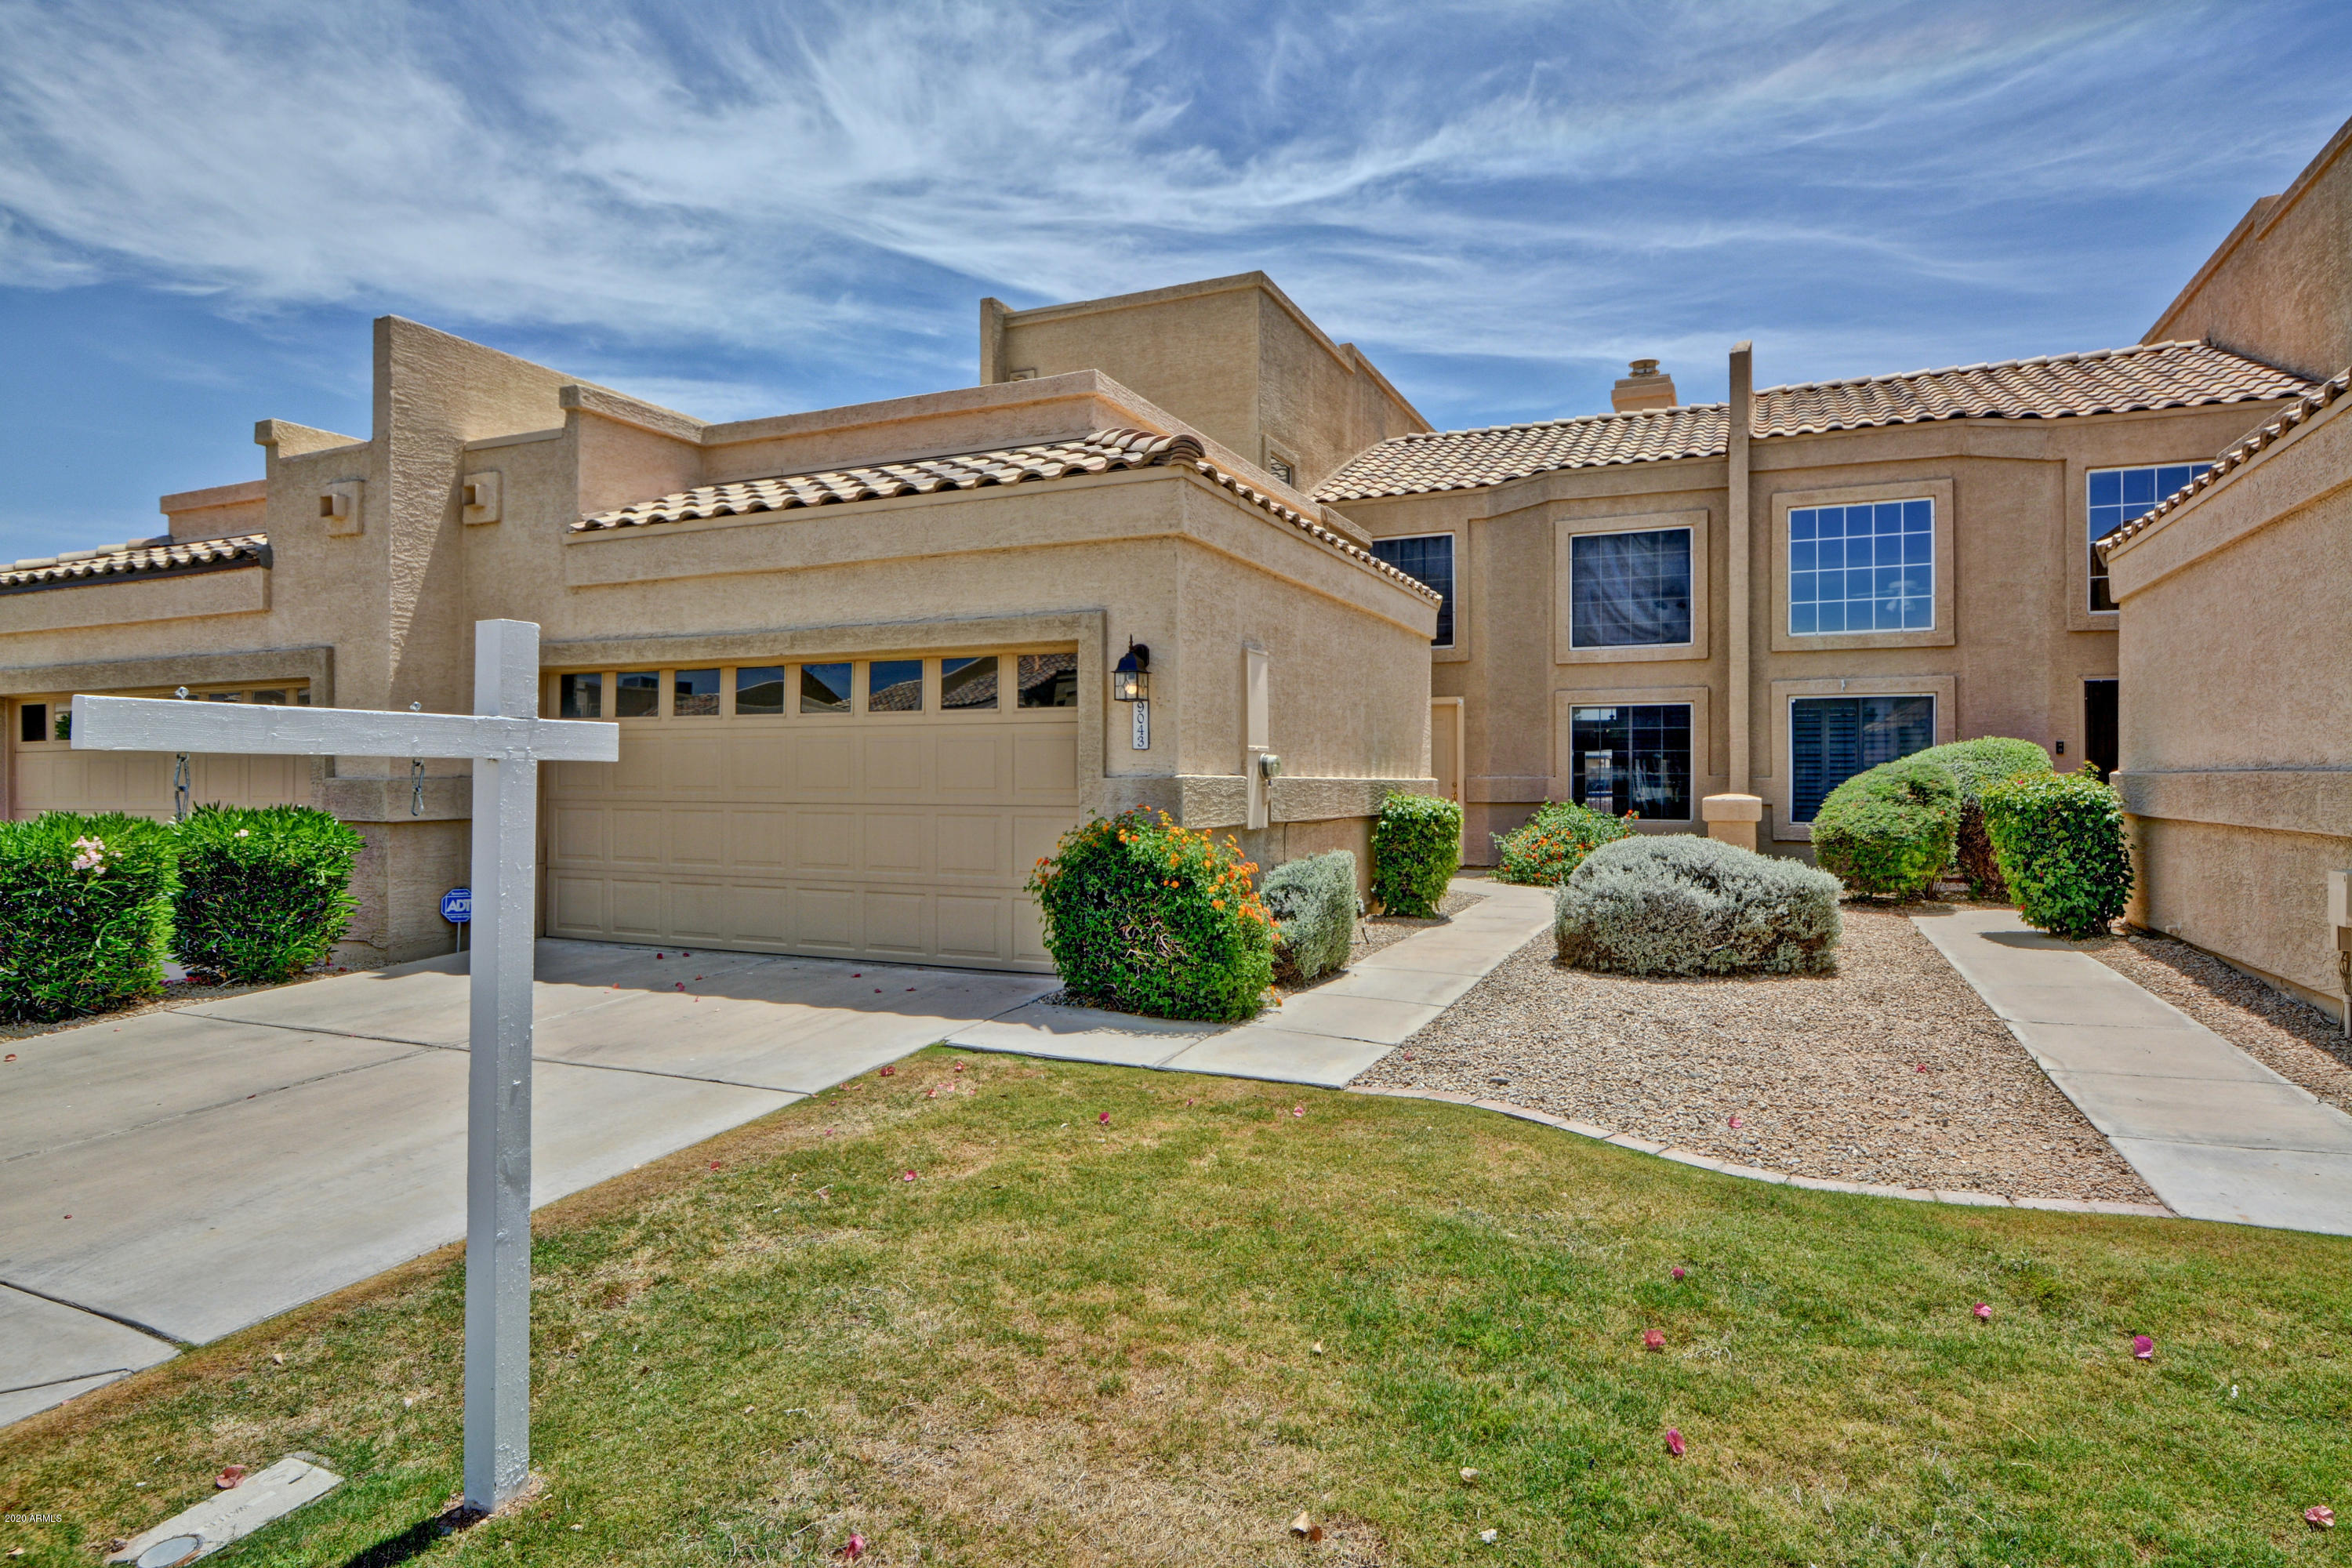 MLS 6075752 9043 W PORT ROYALE Lane, Peoria, AZ 85381 Peoria AZ Condo or Townhome